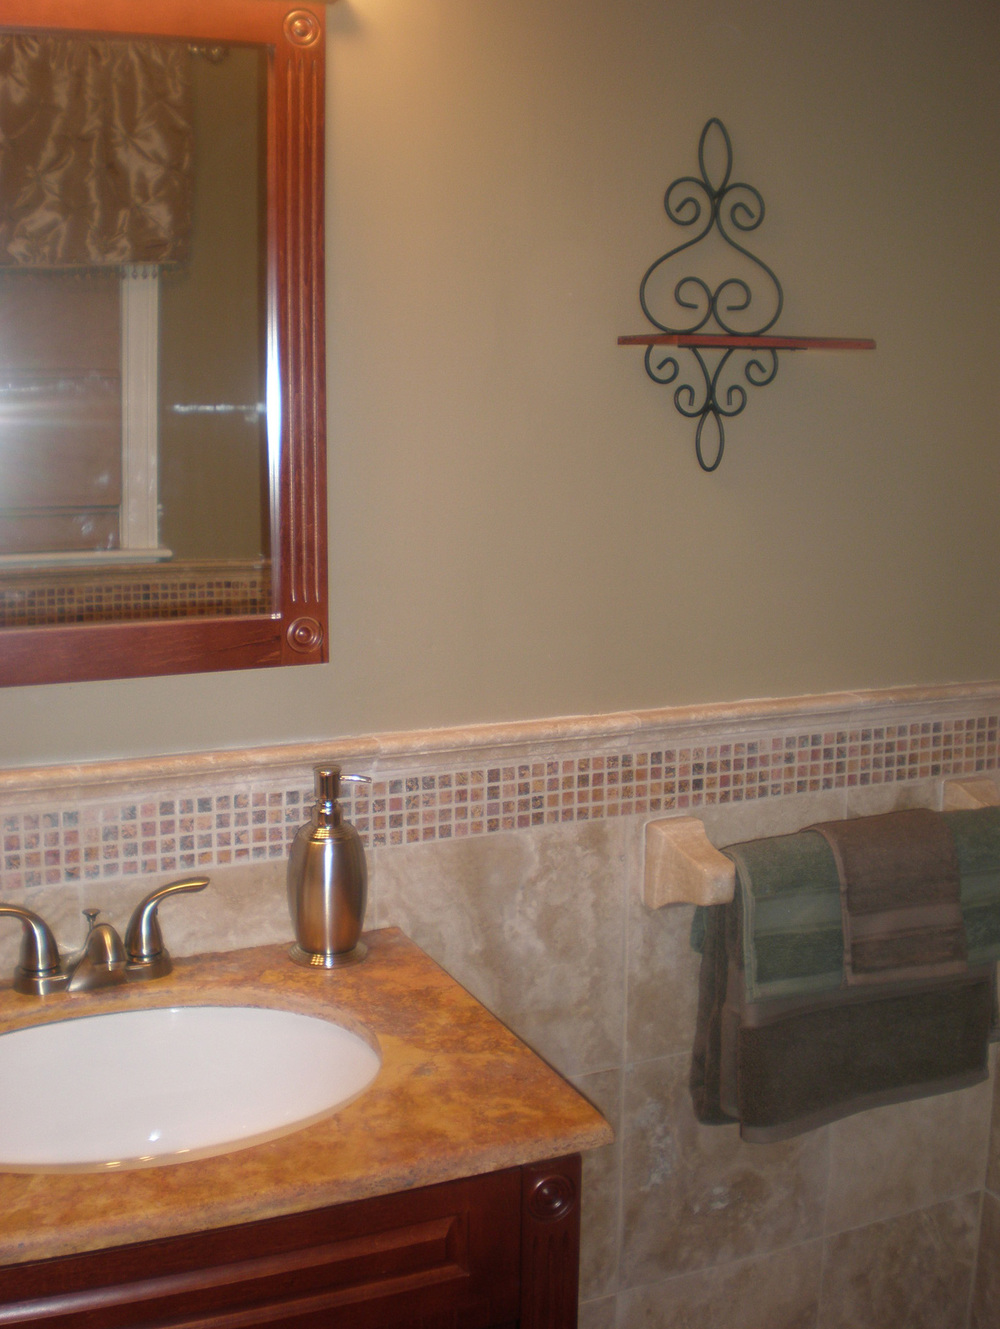 durango bathroom towel bar.jpg